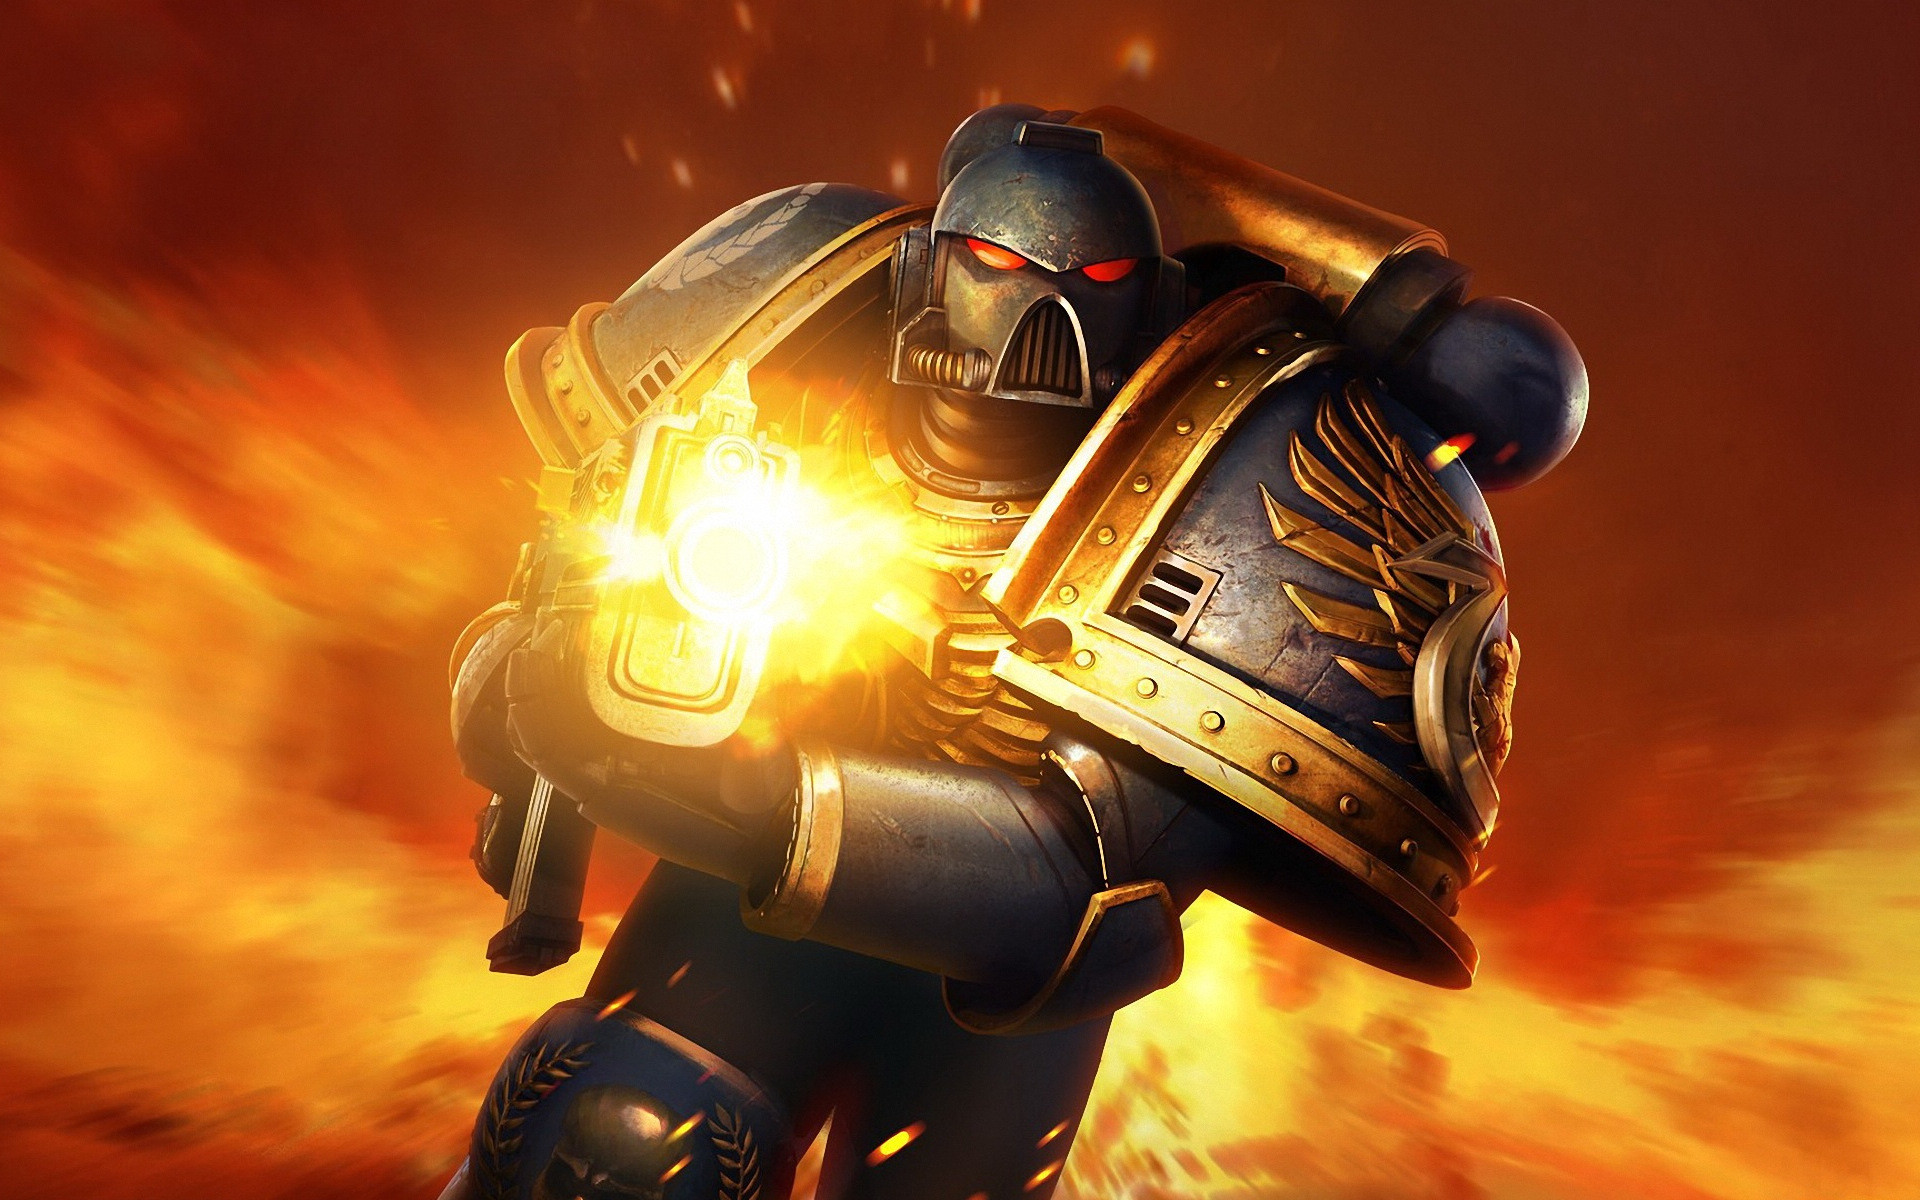 1920x1200 Space marines warhammer wallpapers hd chainimage